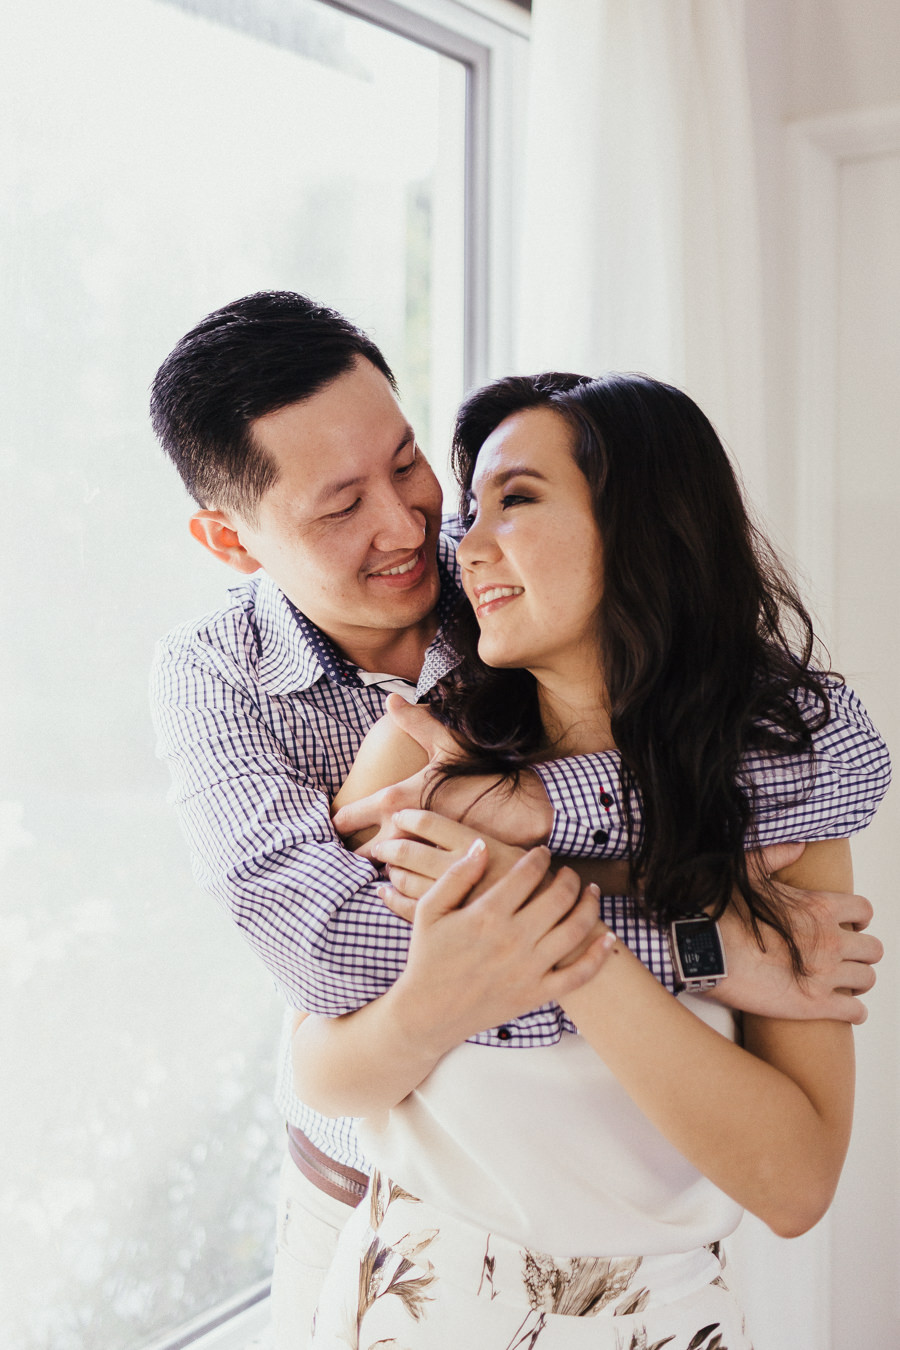 Vu & Man's Pre-Wedding Portraits by Capture & Rapture Photography